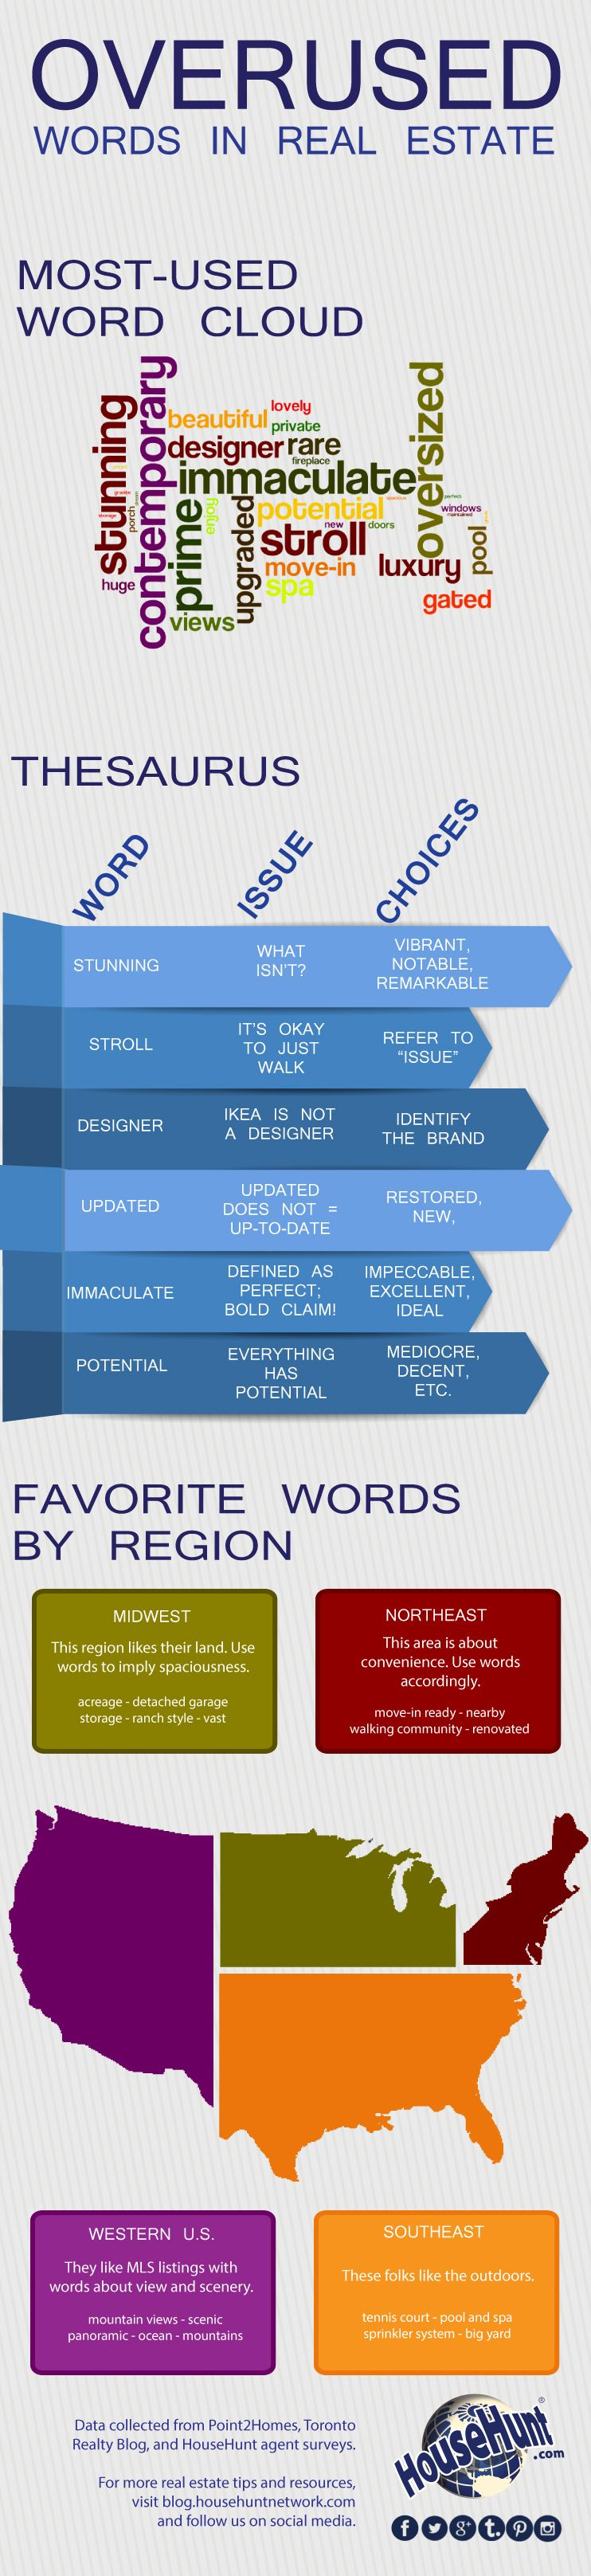 overused words in real estate infographic pinterest real estate